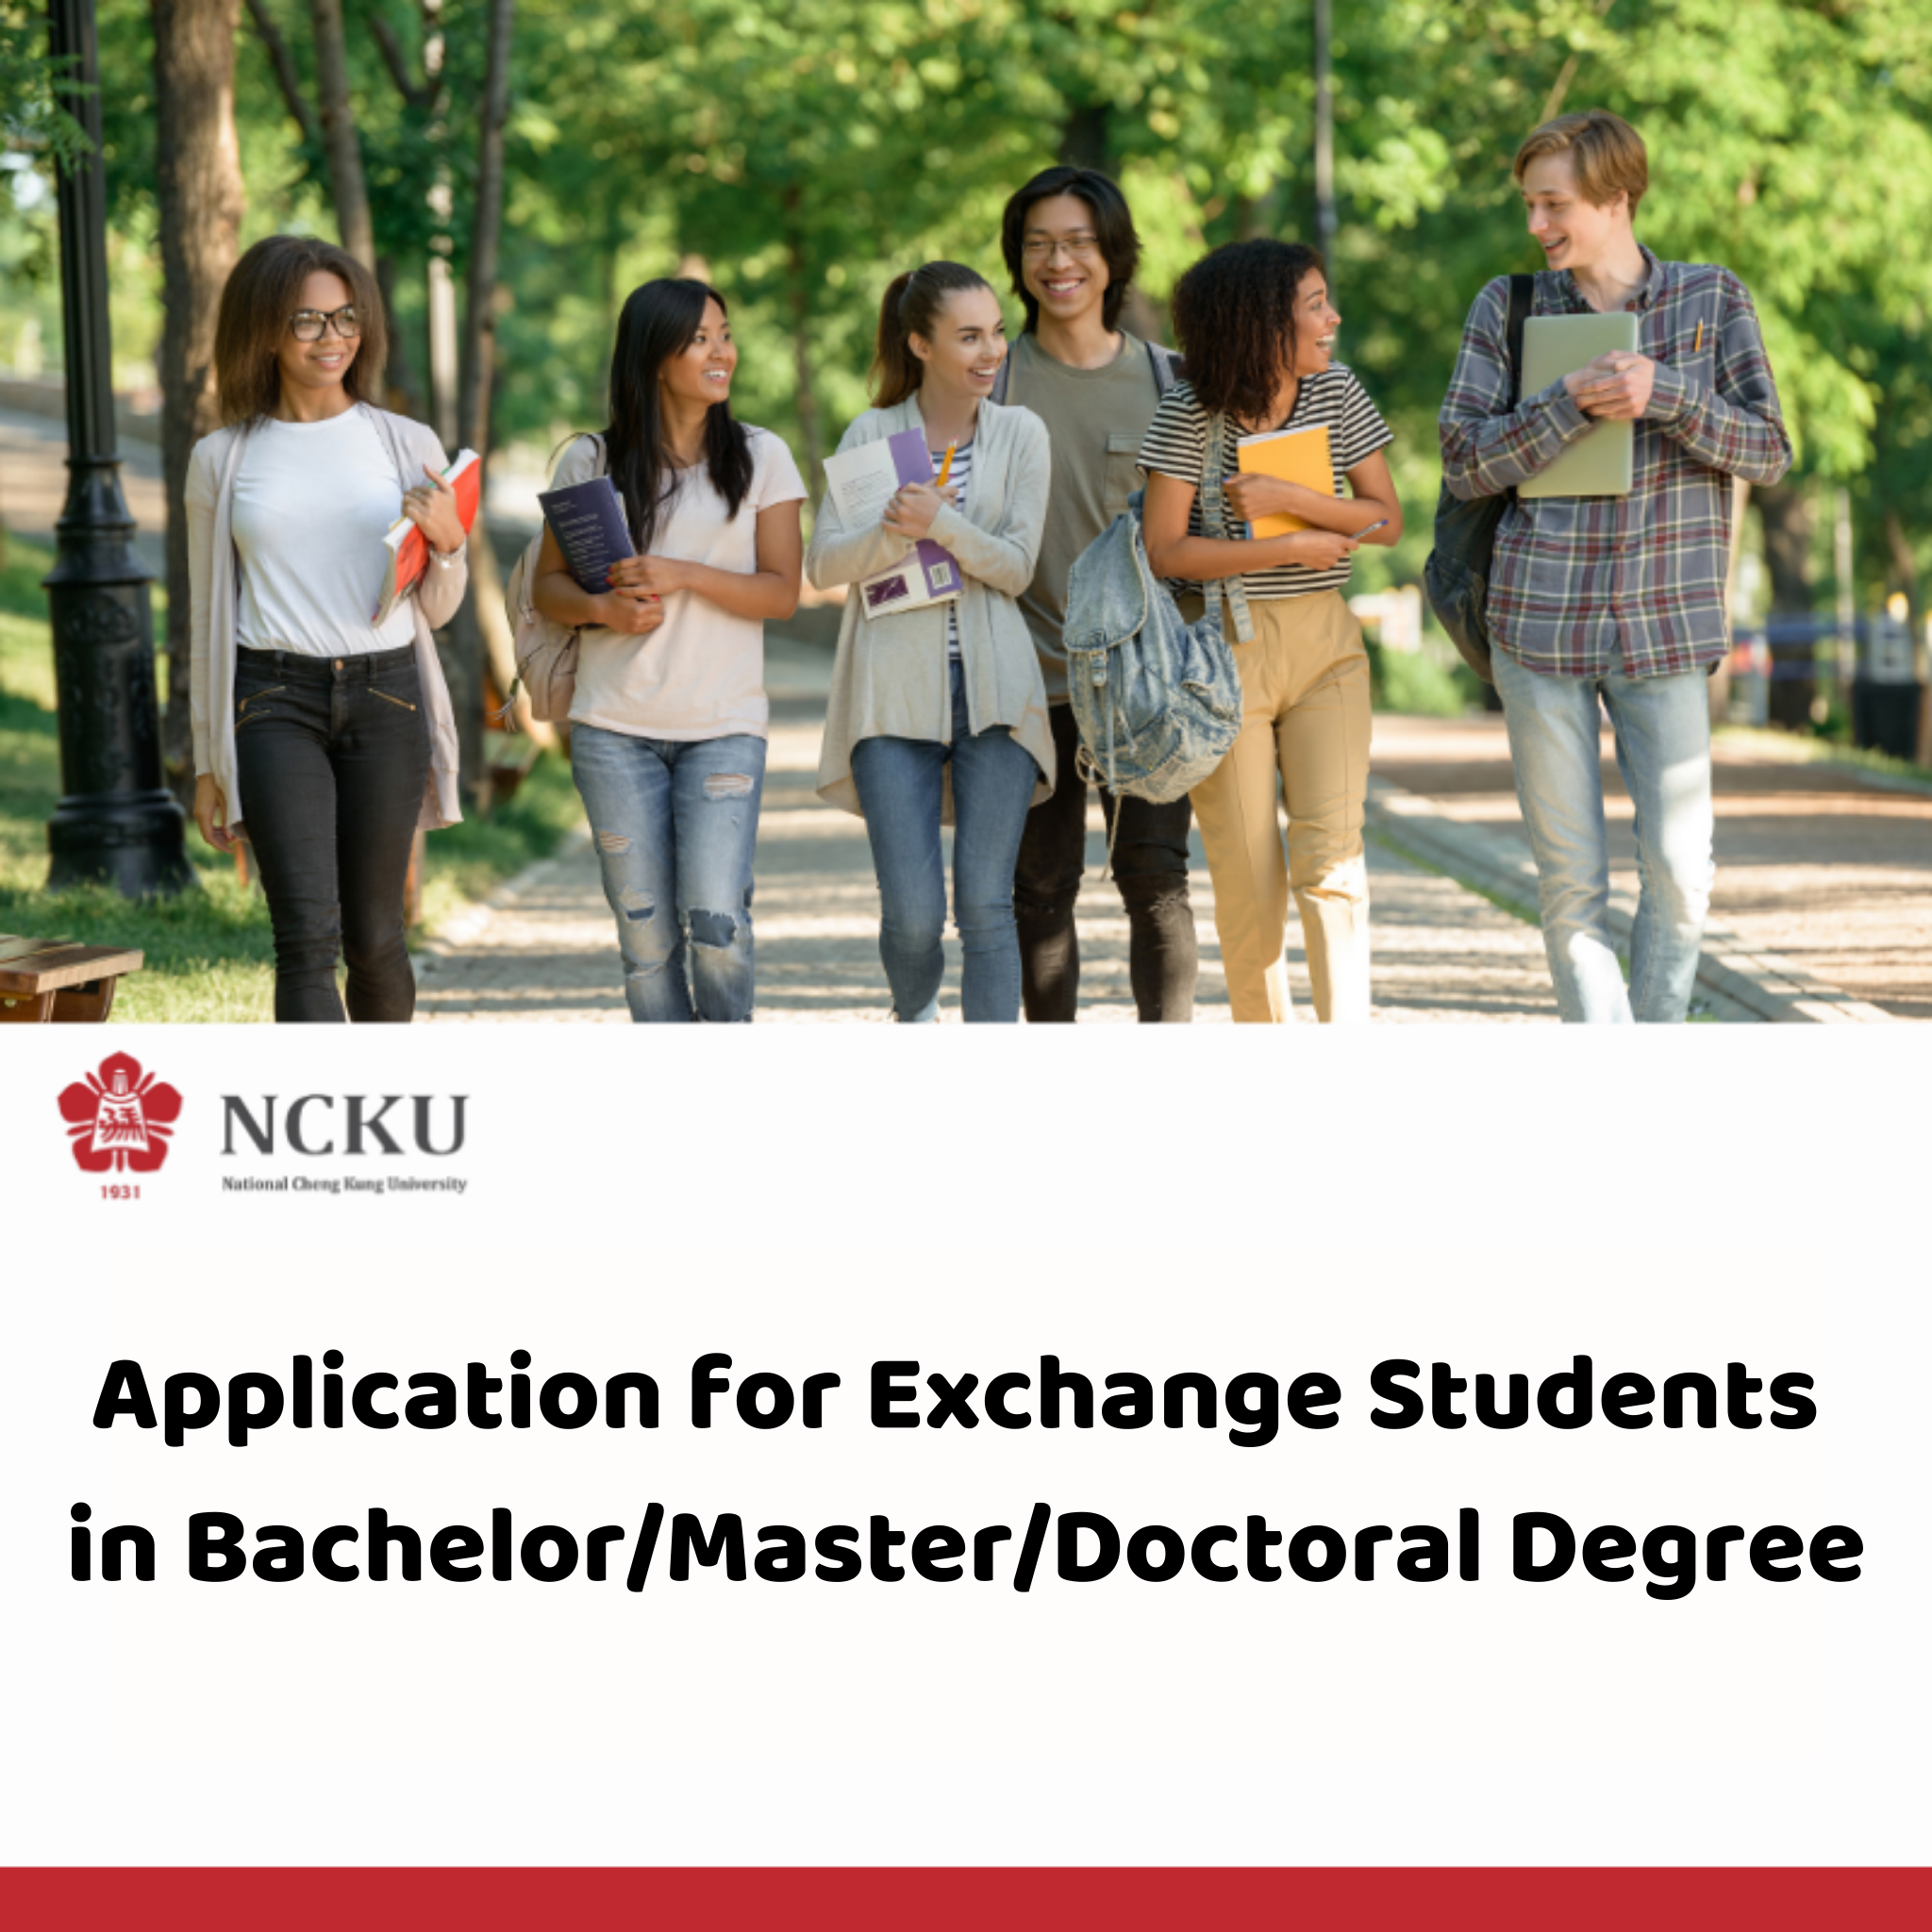 NCKU Application for Exchange Students  in Bachelor/Master/Doctoral Degree